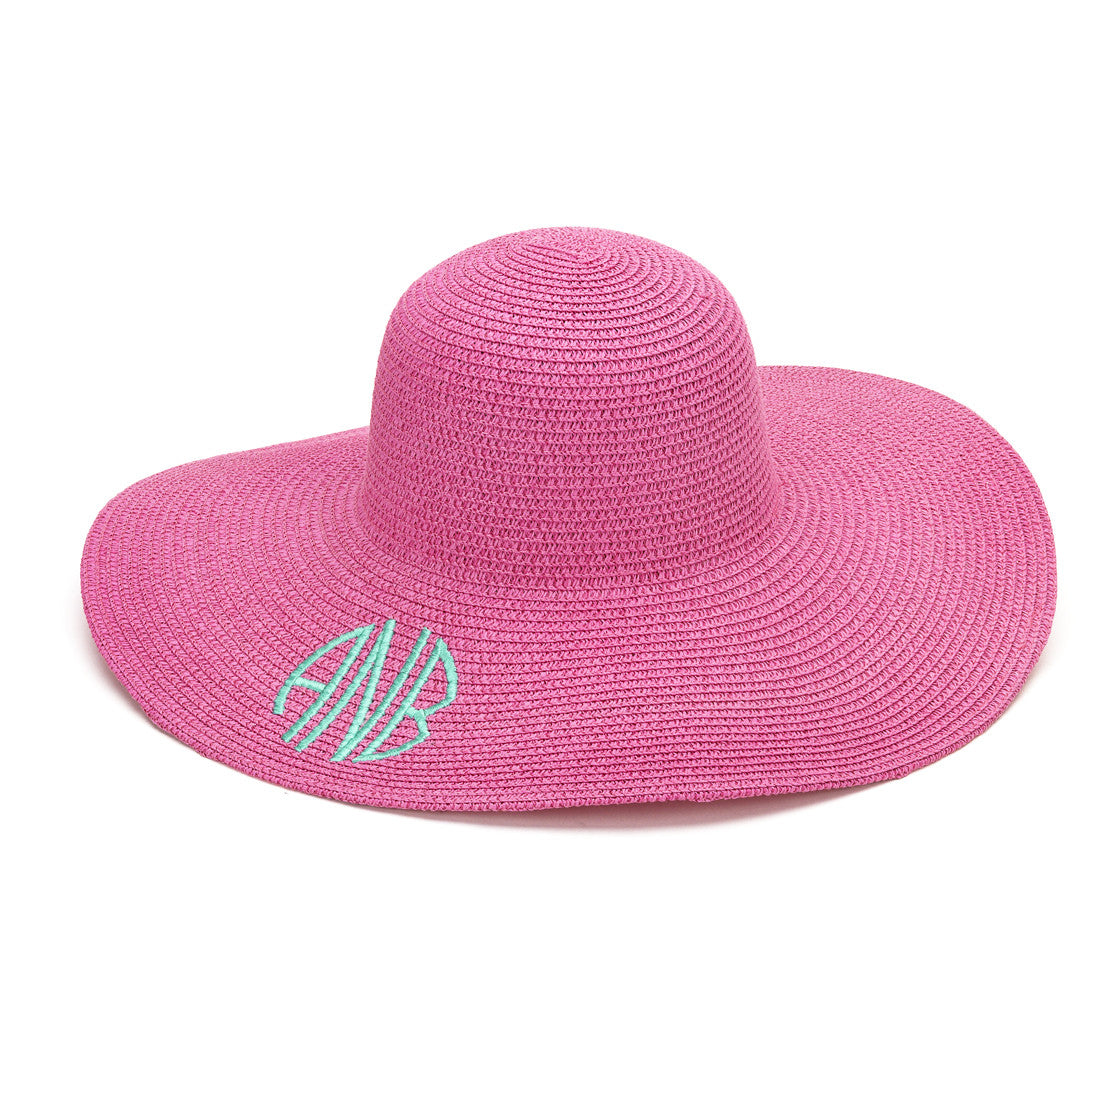 Hot Pink Adult Mongrammed Floppy Hat